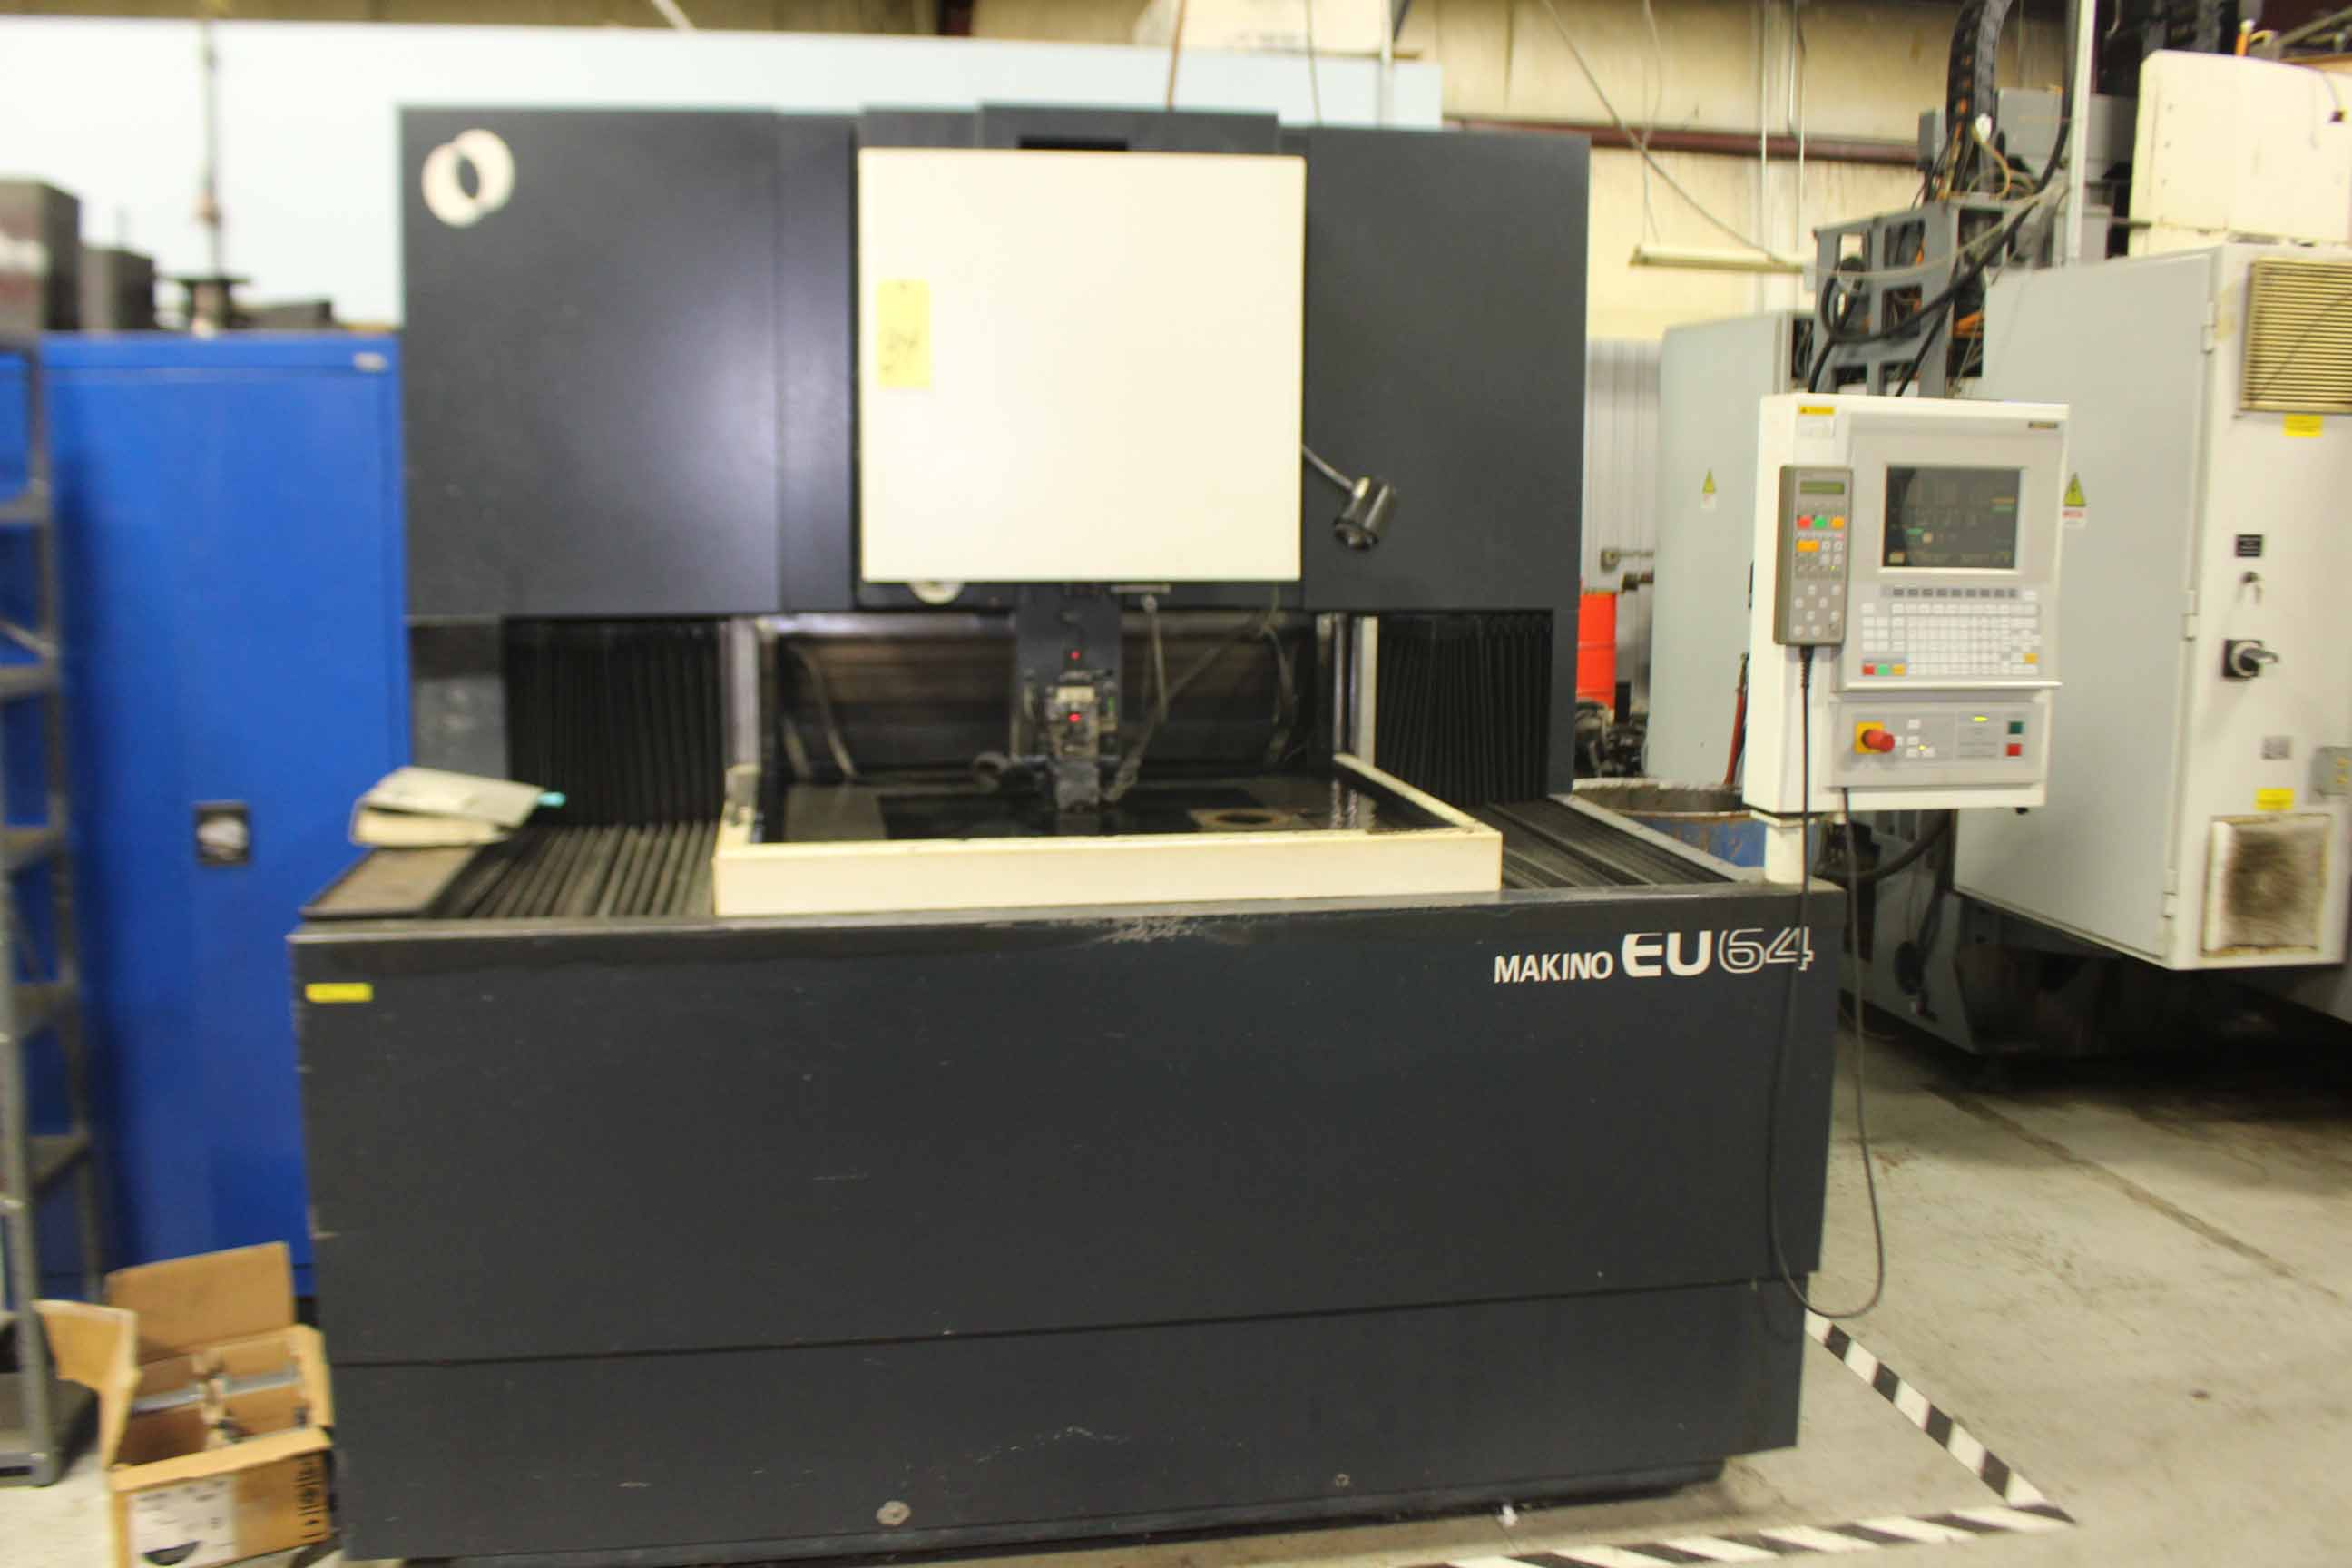 """Lot 34 - CNC WIRE EDM, MAKINO MDL. EU64 5-AXIS WIRE TYPE, MGW-N CNC control, 32.2"""" x 23.6"""" worktable, 37"""" x"""